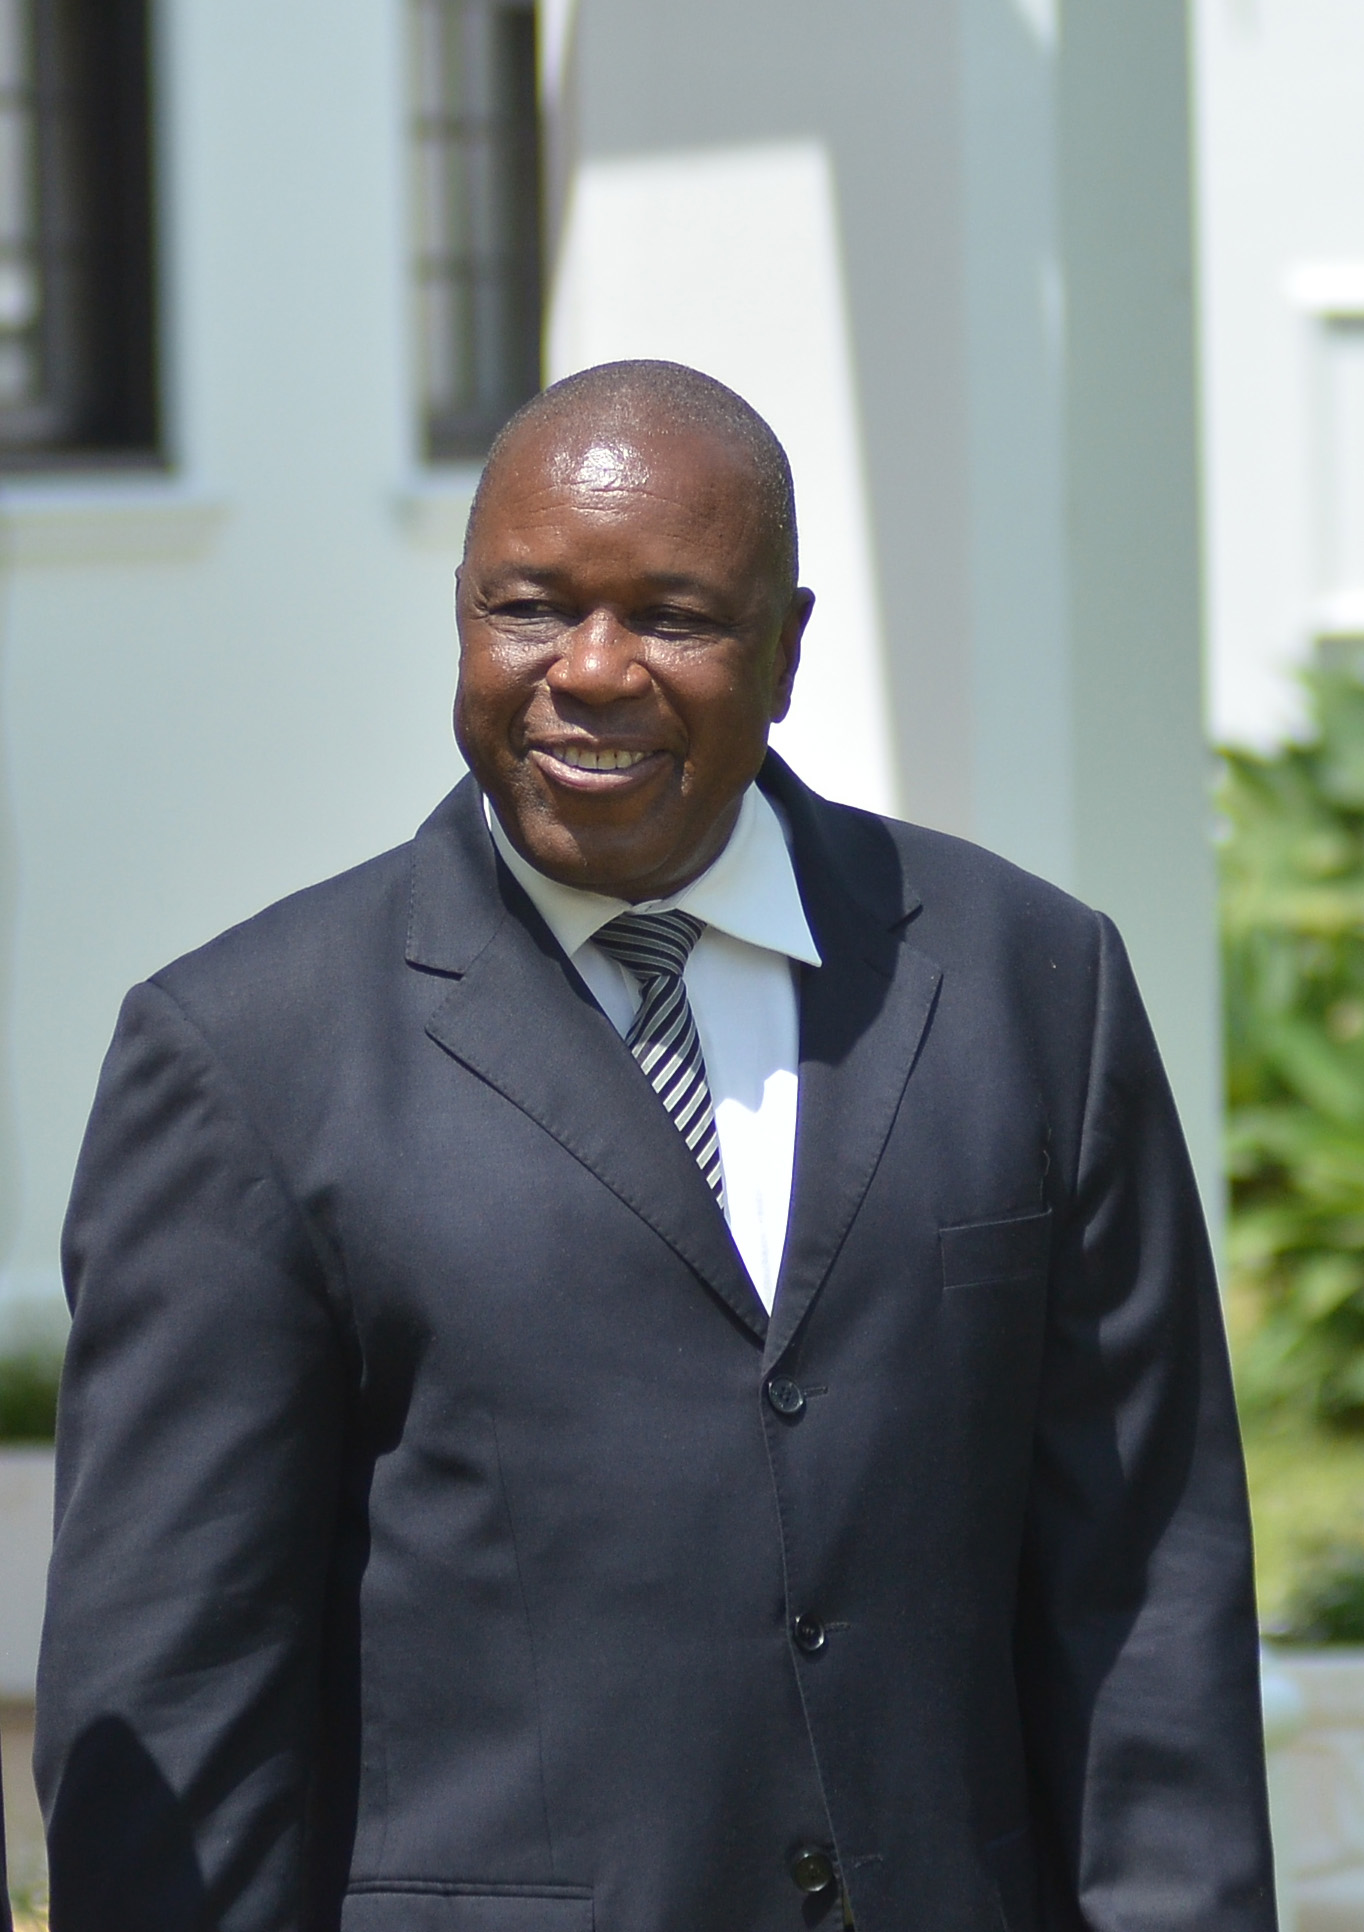 Christopher Mutsvangwa, Zimbabwe Deputy Minister of Foreign Affairs, Washington, DC, August 4, 2014. (Sebastian Mhofu/VOA)